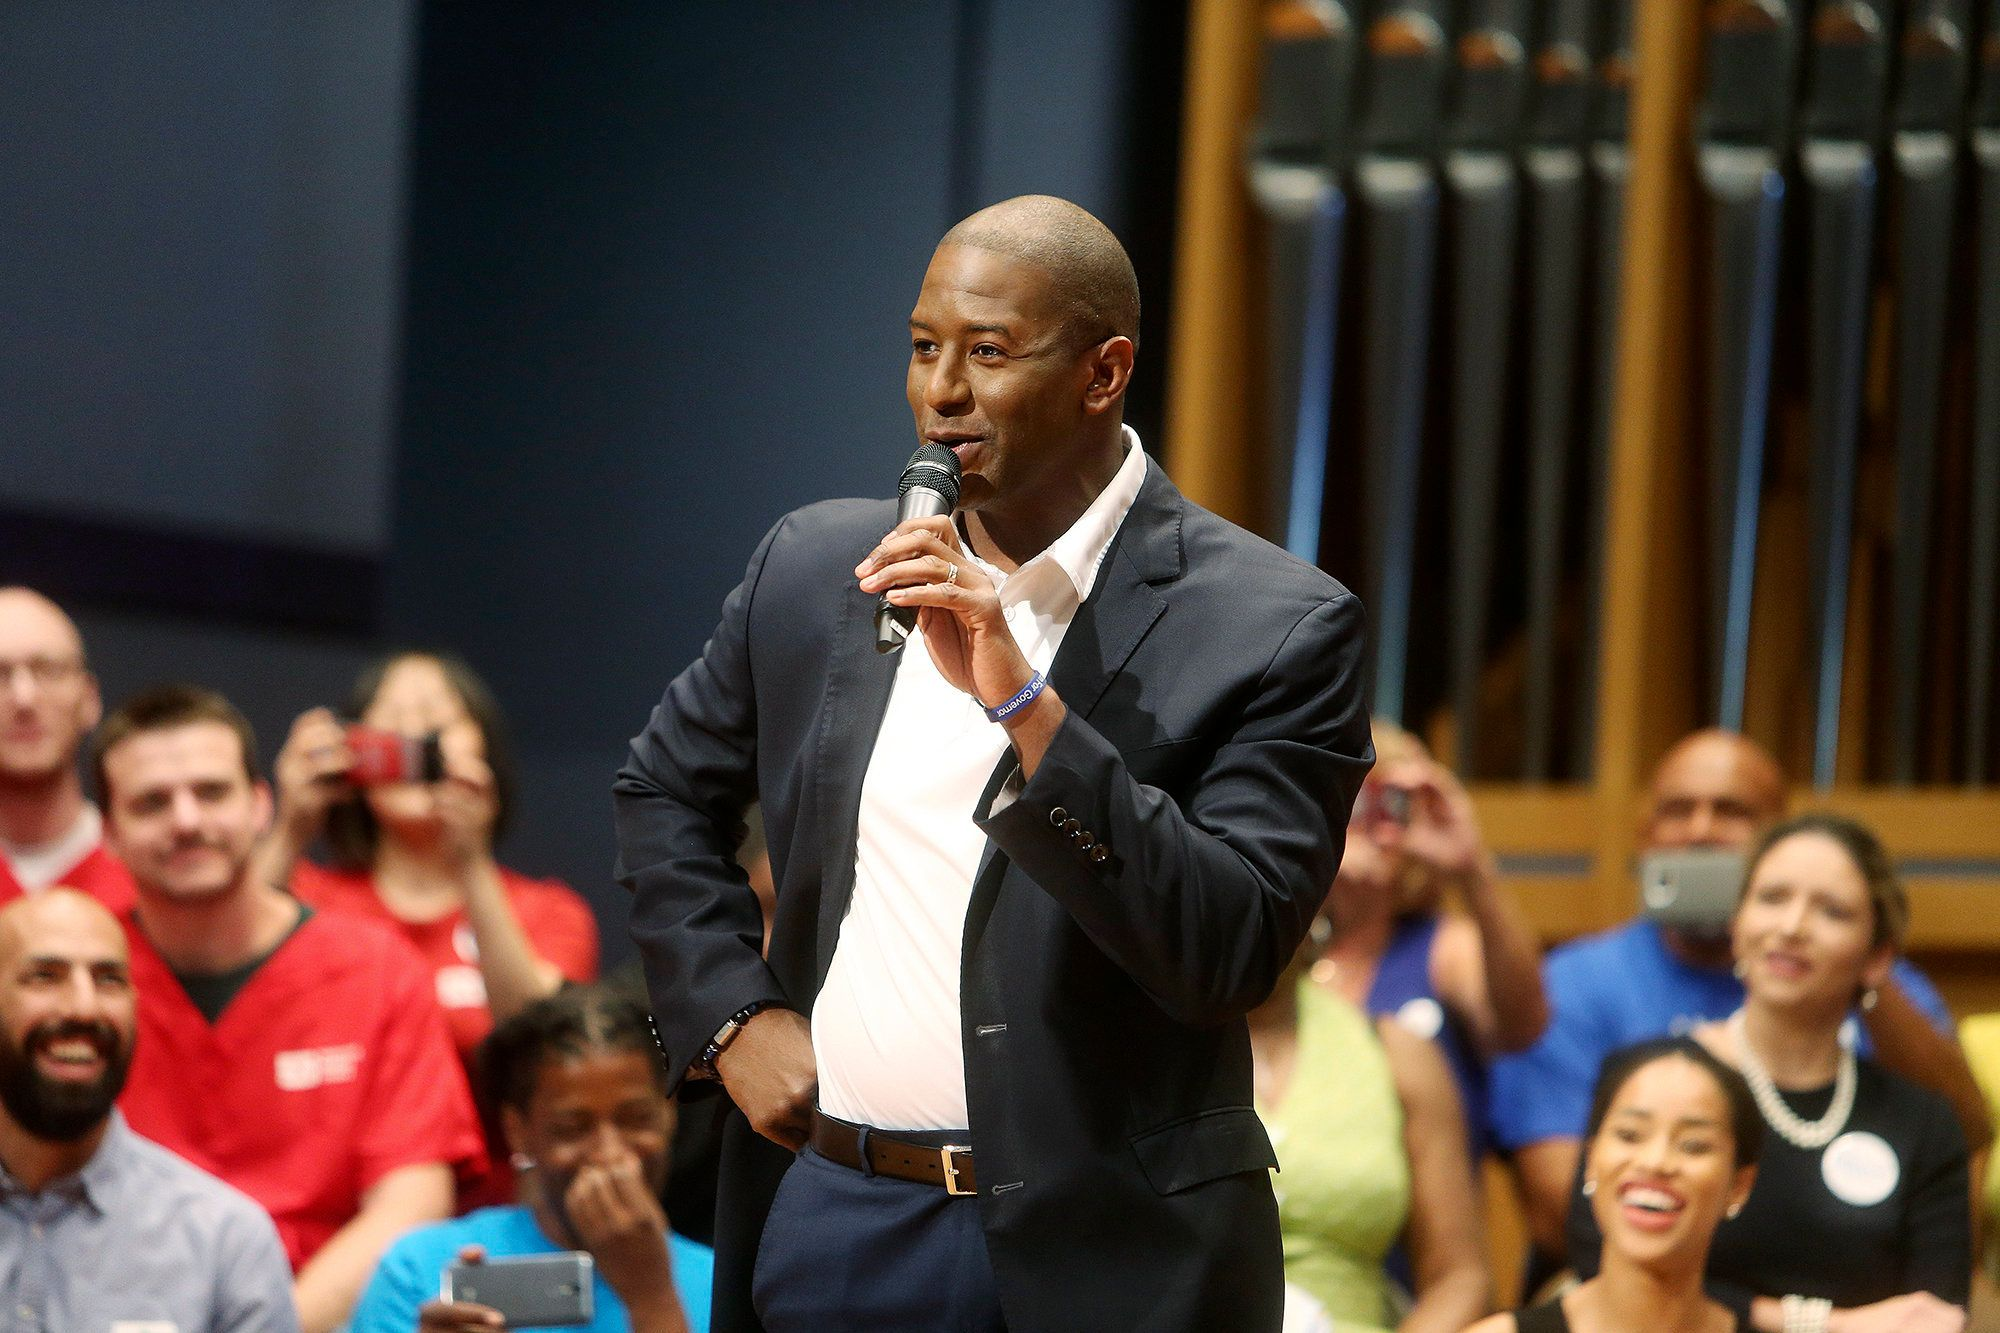 Gubernatorial Democratic candidate Andrew Gillum speaks to a packed music center during a town hall at St. Petersburg College in St. Petersburg, Fla., on Friday, Oct. 19, 2018. (Octavio Jones/Tampa Bay Times via AP)